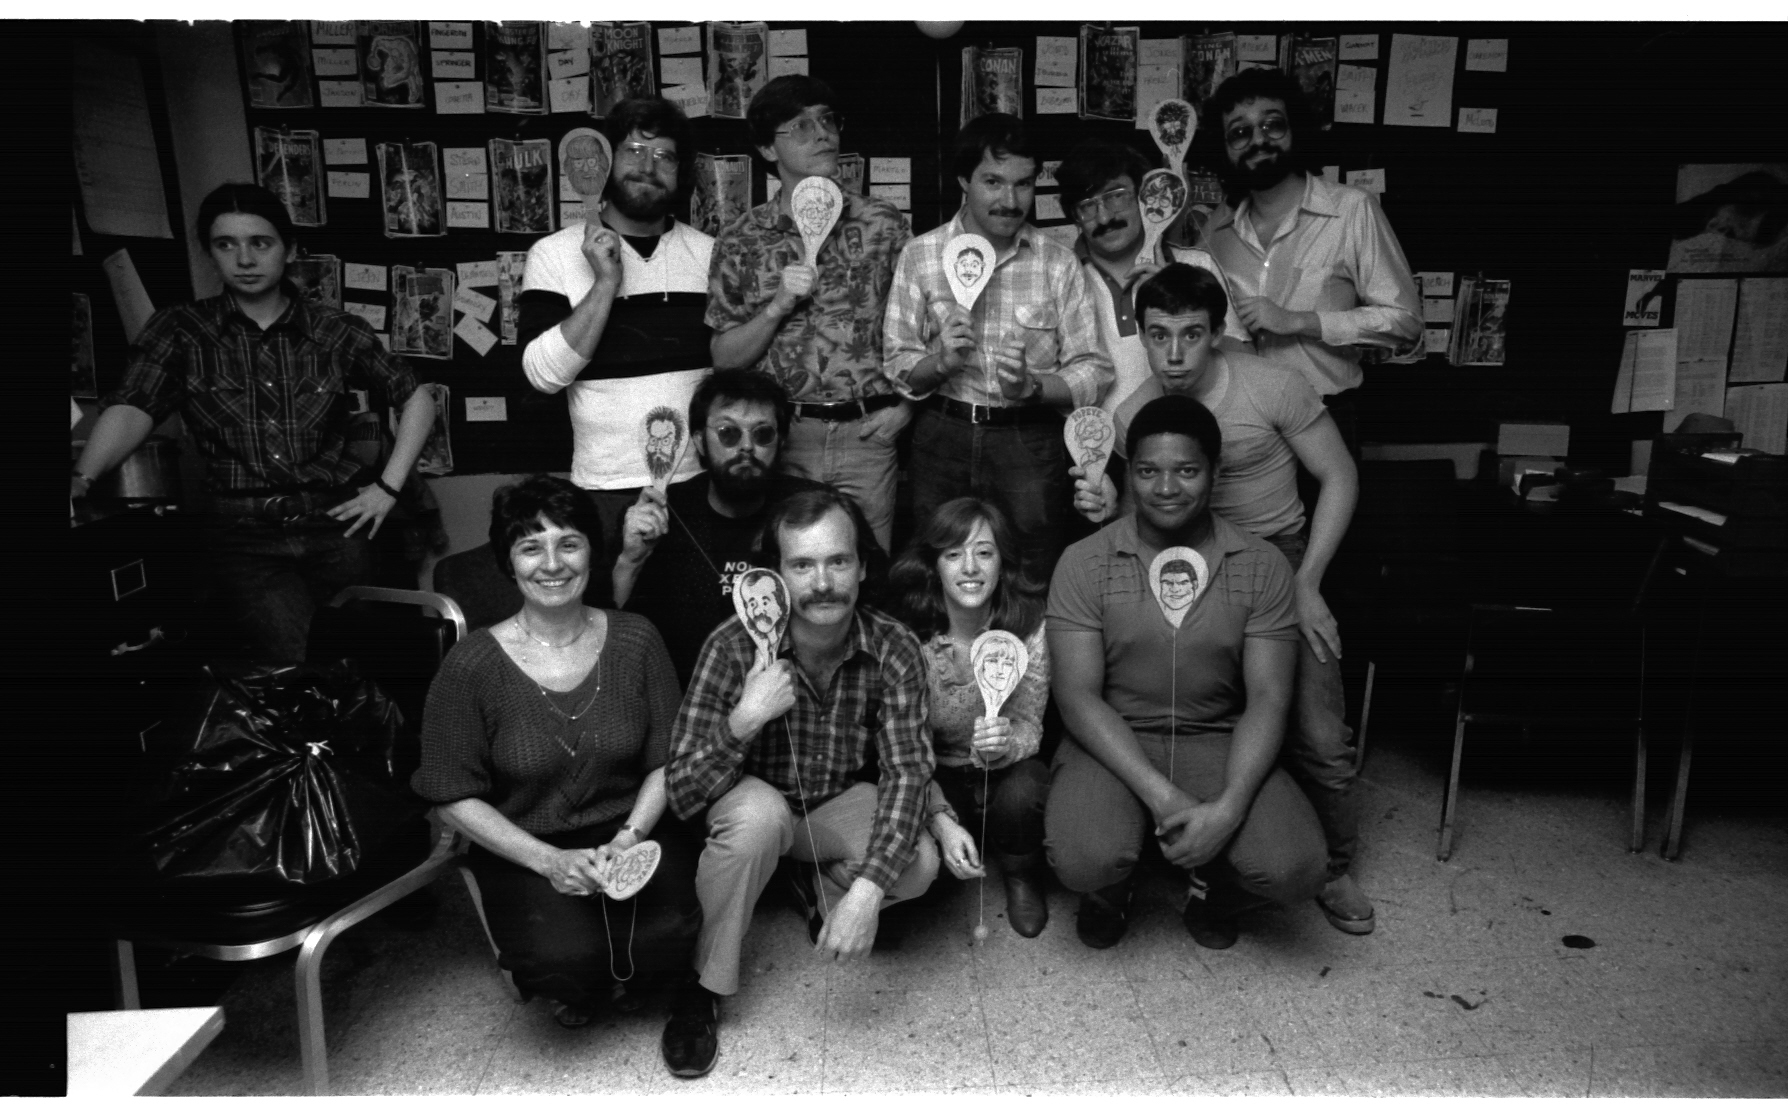 The All-Winners Squad! The Only Annual Wack-Offs comes to a thrilling close. No one knows who that Intern is at extreme Left, sorry. Back row: Ron Zalme, Mike Carlin, Joe Albelo, Tom DeFalco, Jim Salicrup. Middle-ish row: Rick Parker and Jack Morelli. Bottom row: Virginia Romita, Mark Gruenwald, Linda Florio and Lance Tooks. Congratulations all!